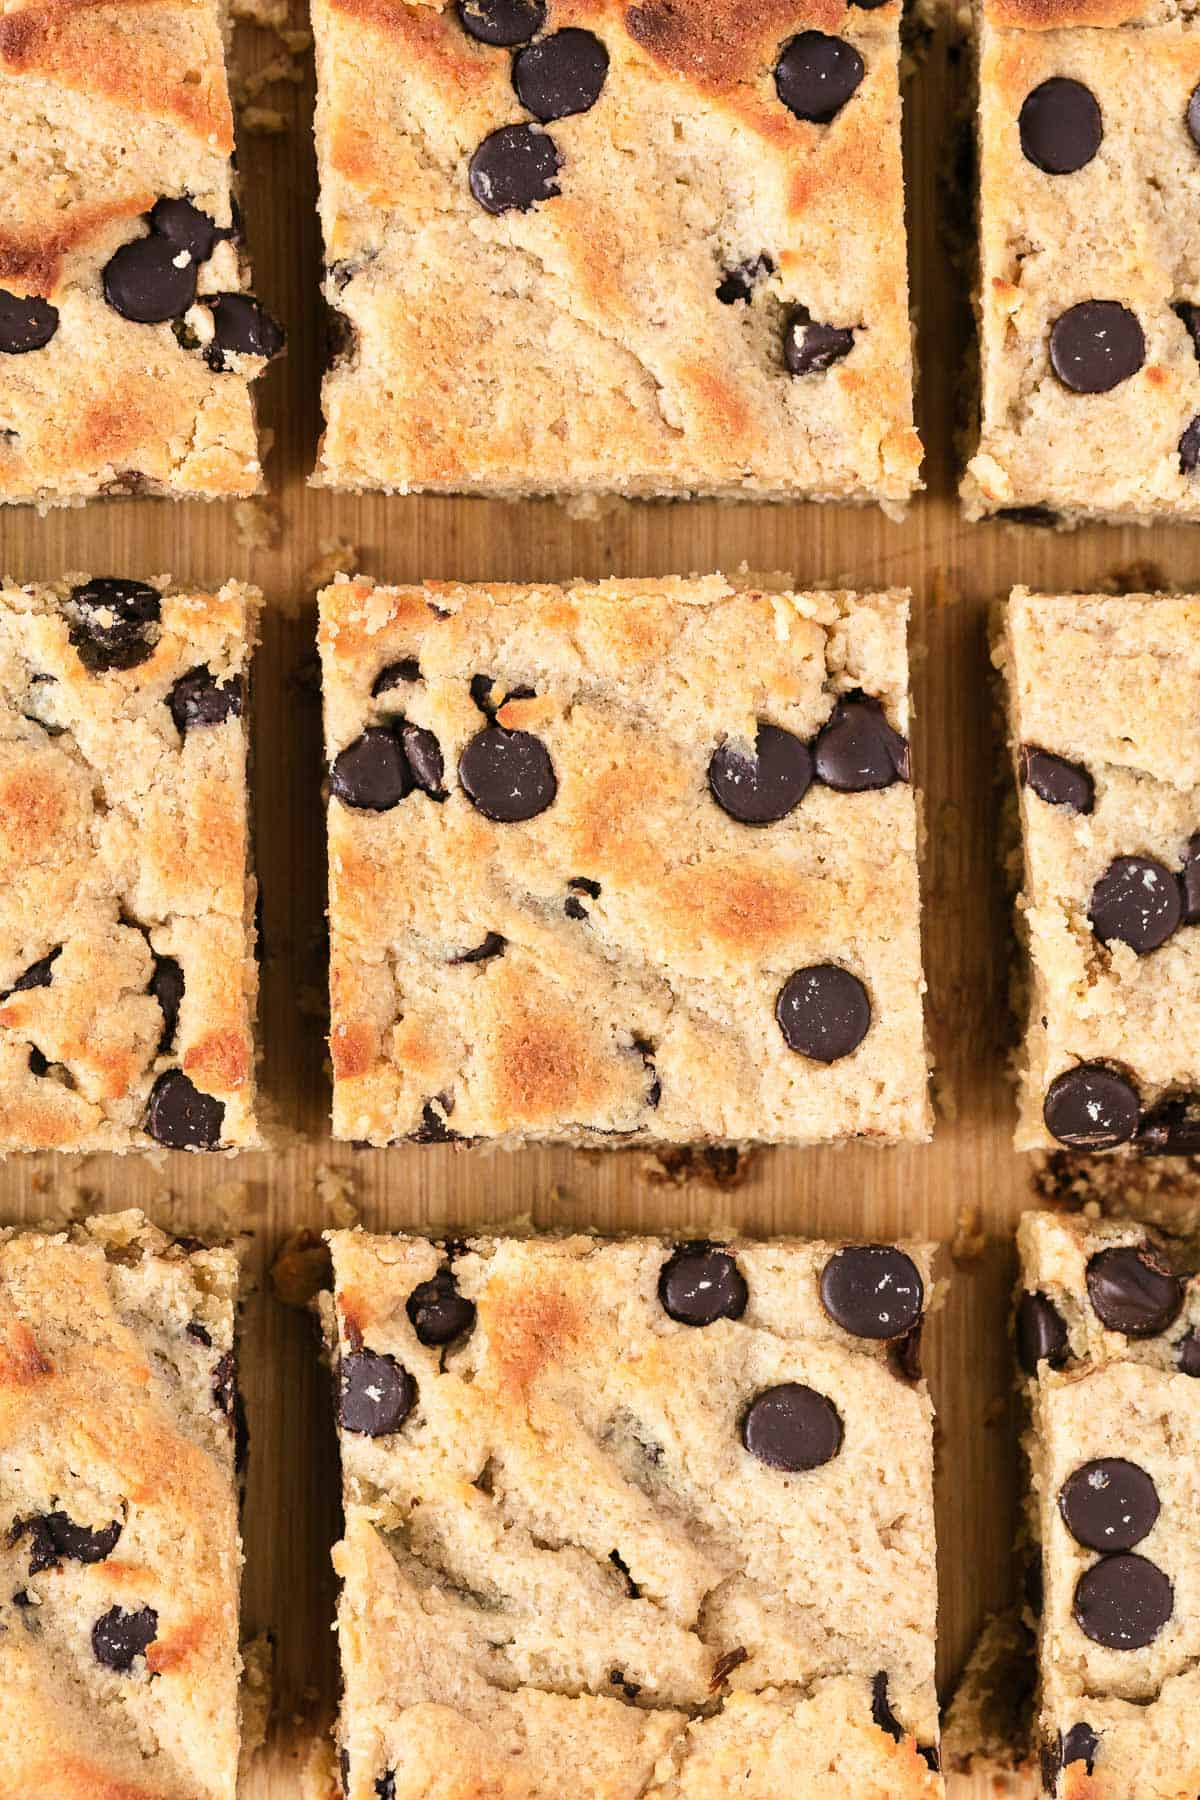 keto blondies stacked on top of each other on parchment paper, with a cup of coffee in the background